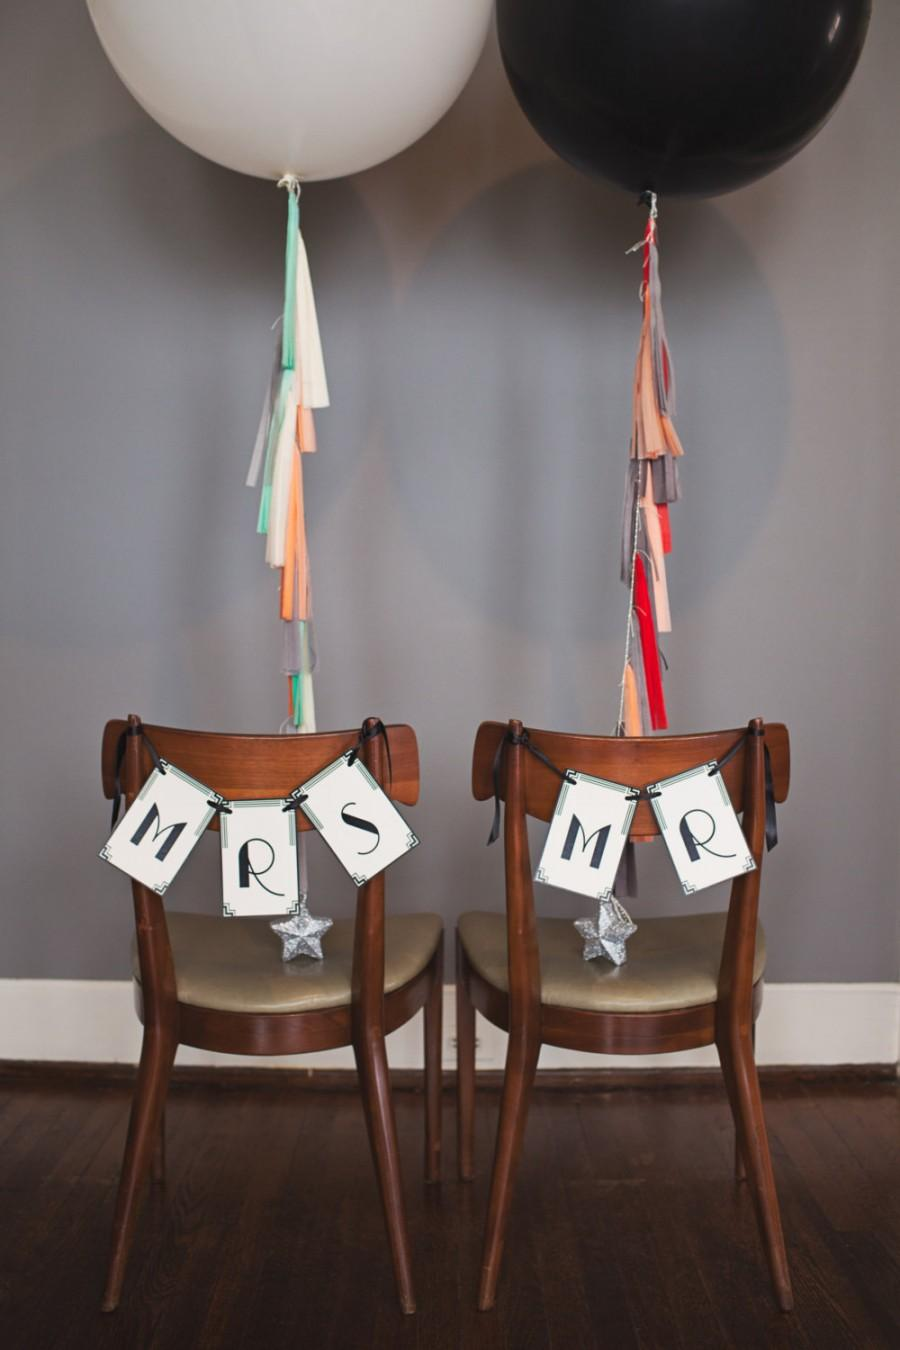 Wedding - Art Deco Chair Signs: Mr & Mrs